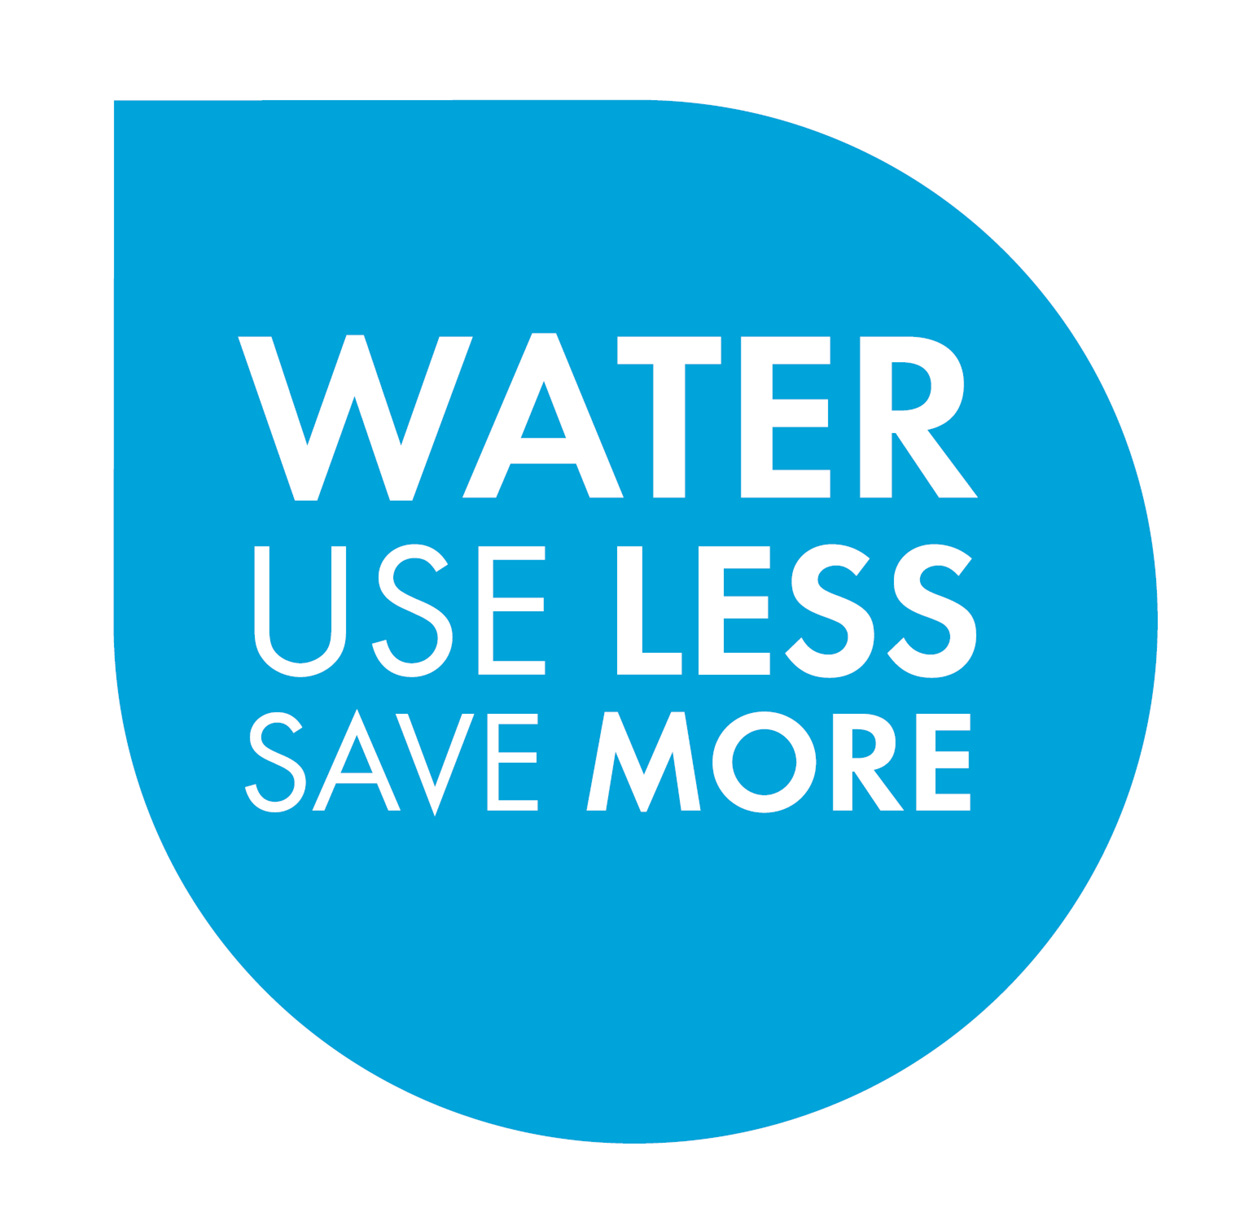 water conservation 1 Please note: it is a violation of the water conservation plan to operate sprinklers during rain or freeze events also in this plan, it is prohibited to use sprinklers between 10 am and 6 pm from april 1 - october 31 each year.